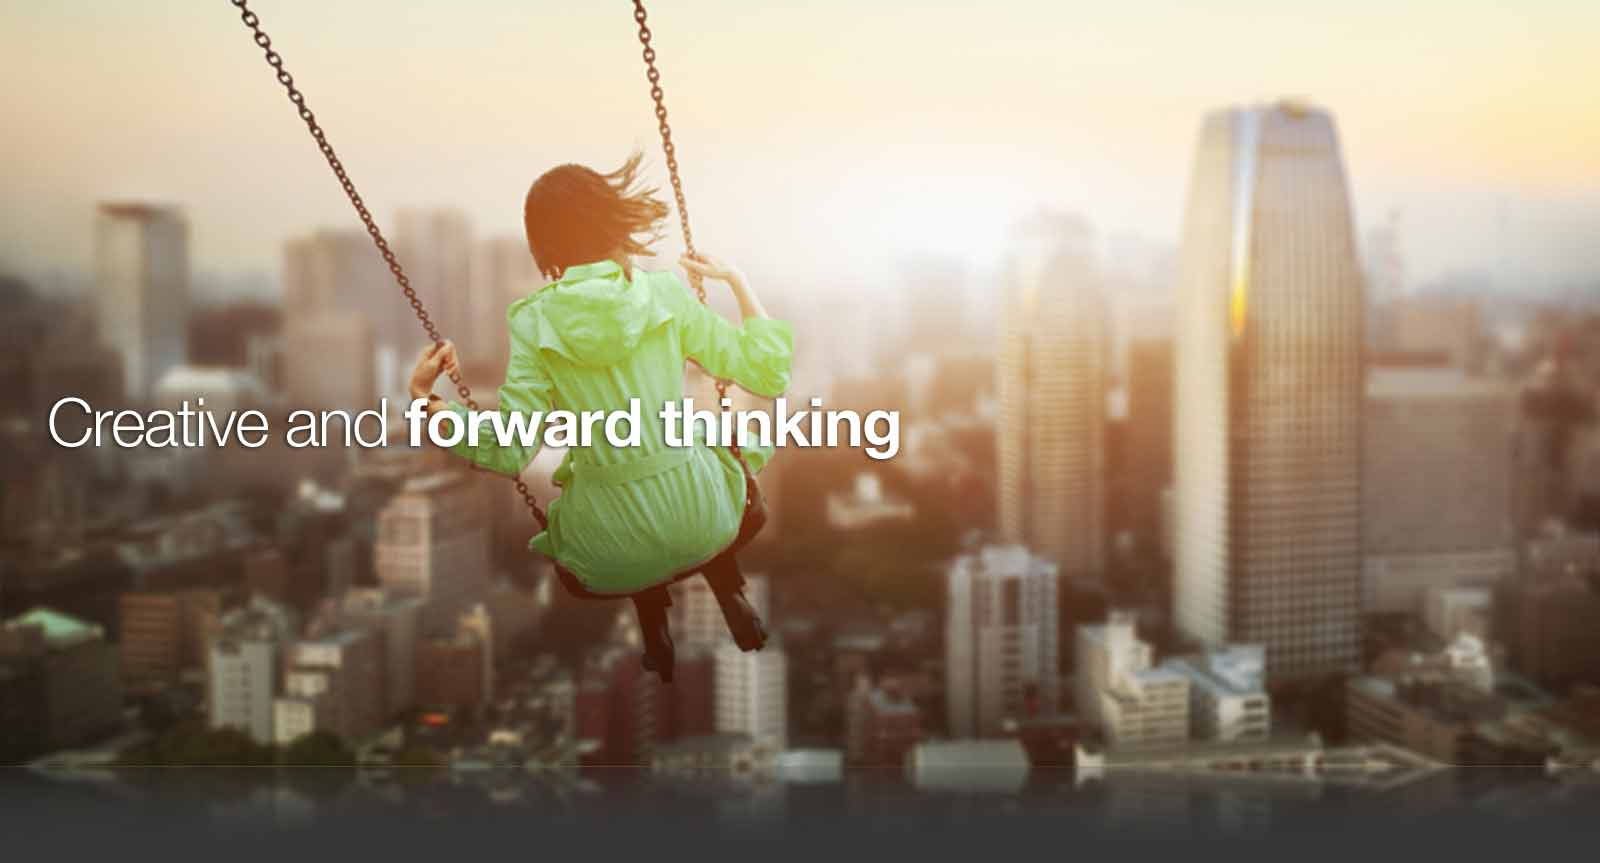 Creative_and_forward_thinking